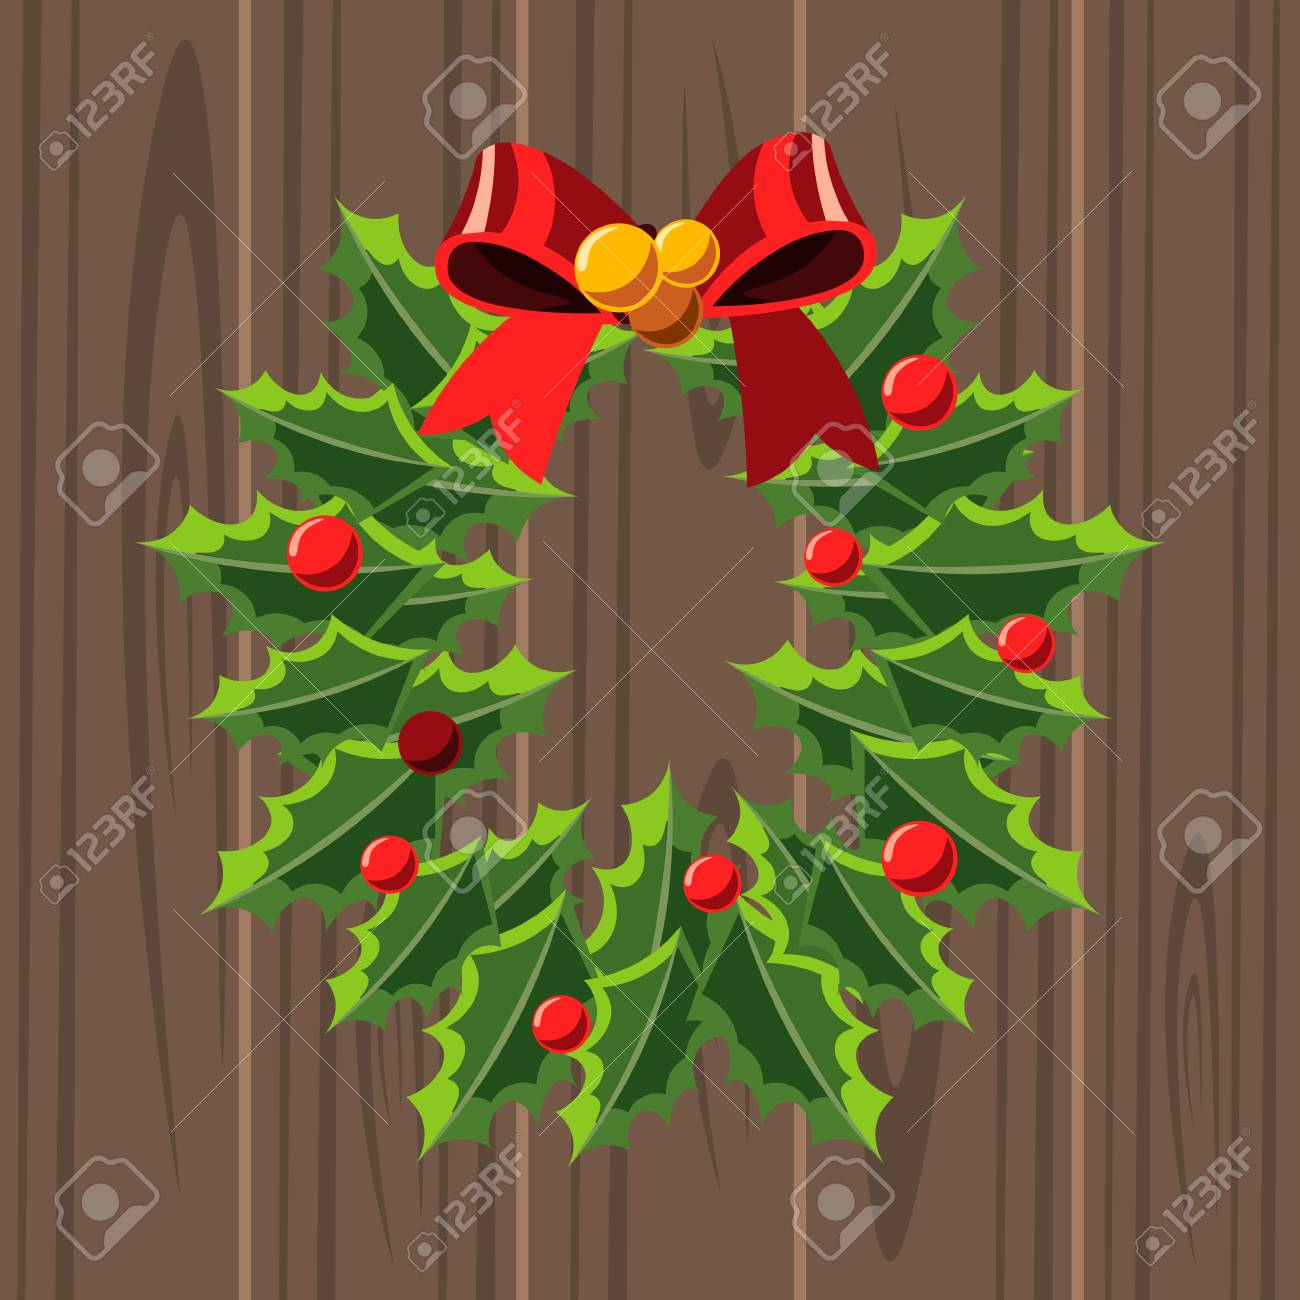 christmas wreath template on wooden background royalty free cliparts